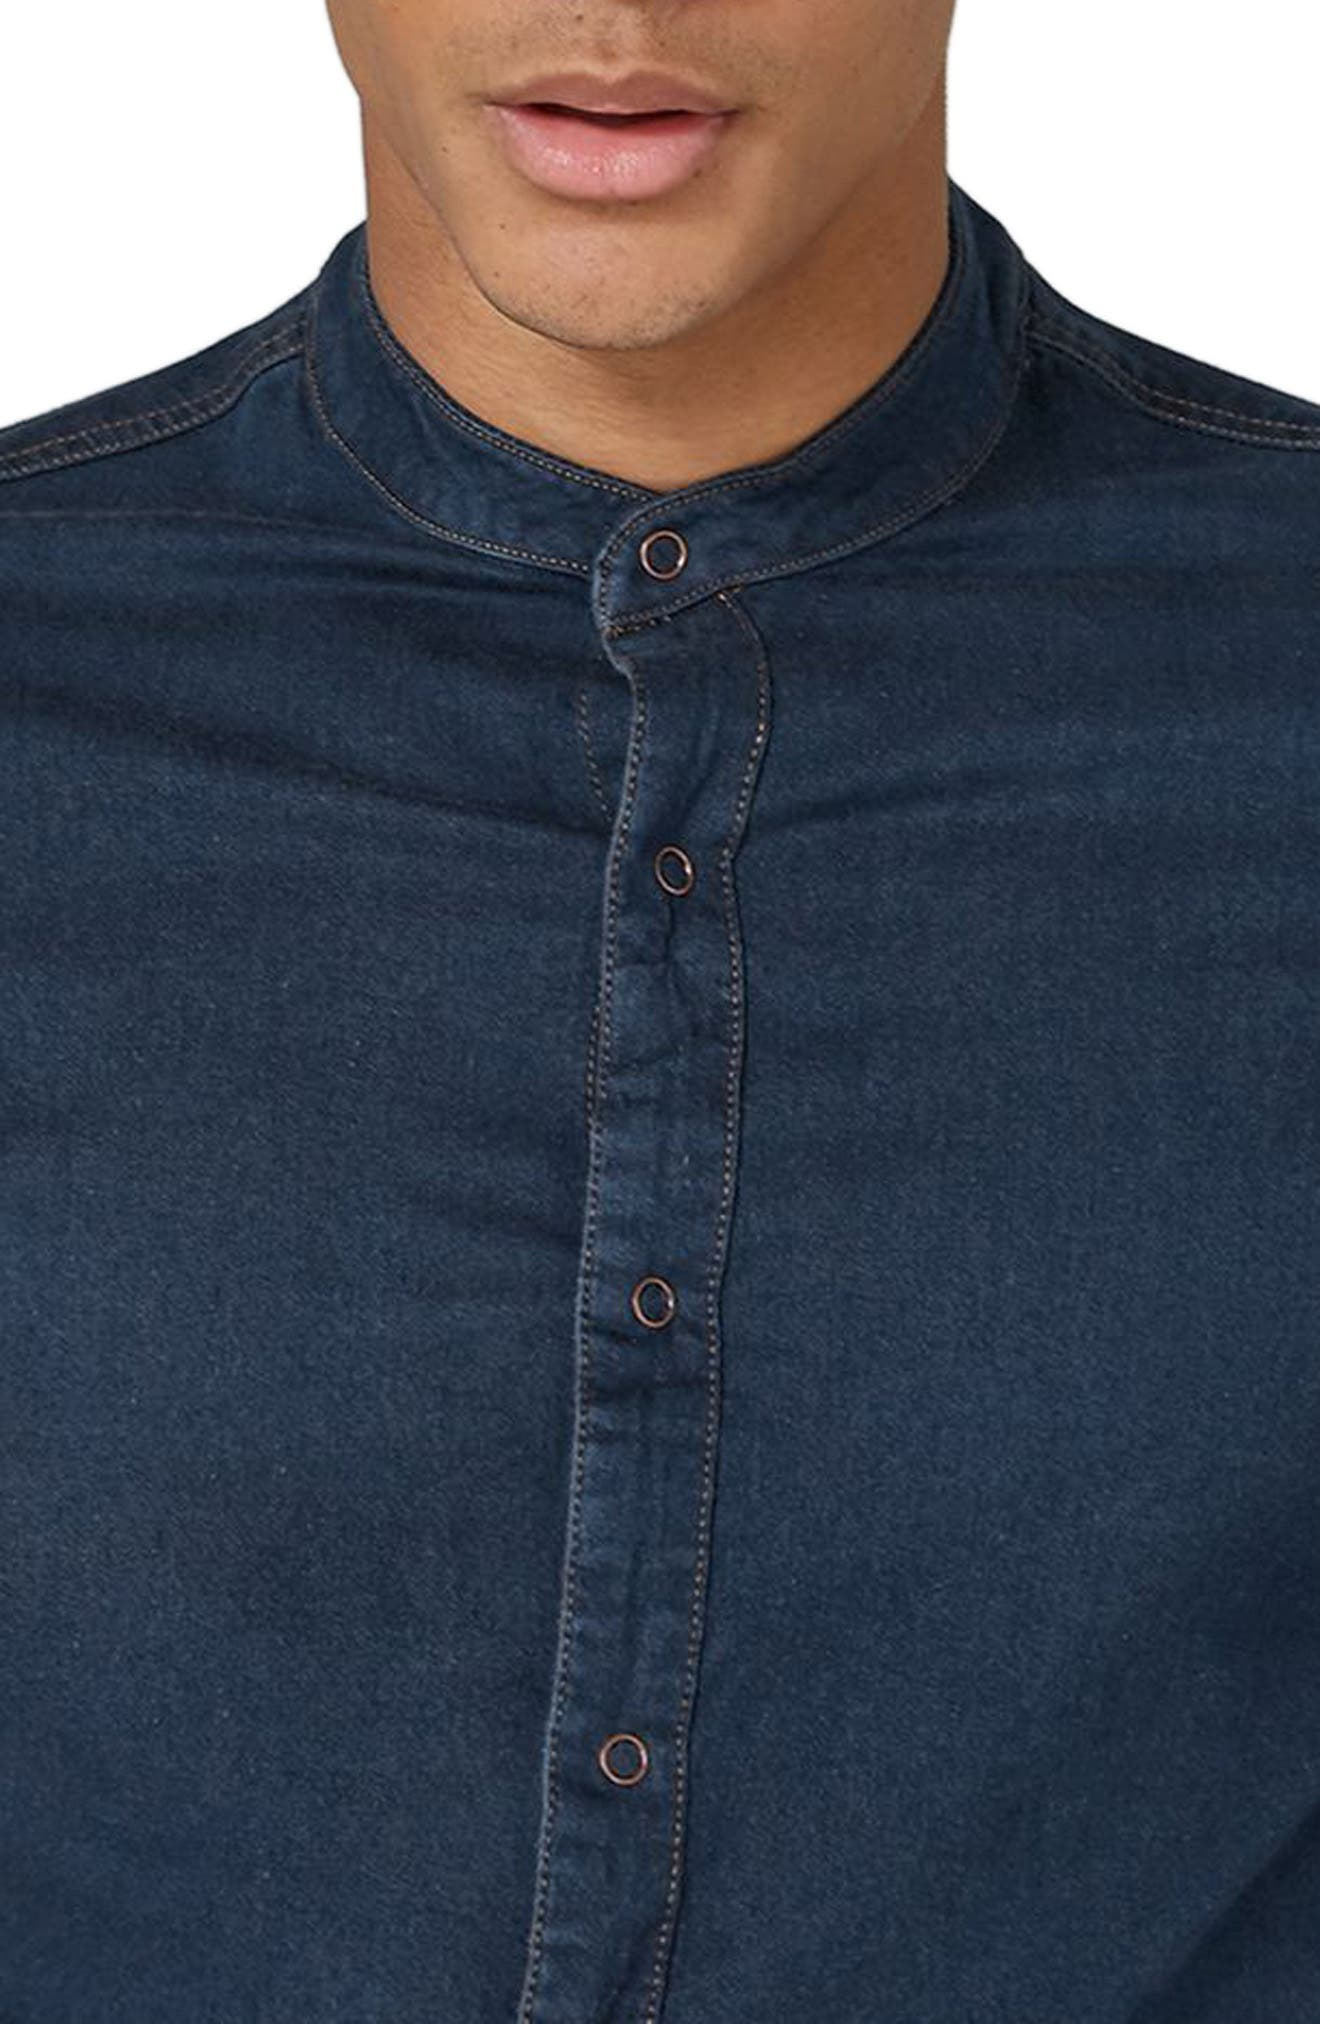 Band Collar Denim Shirt,                             Alternate thumbnail 3, color,                             400